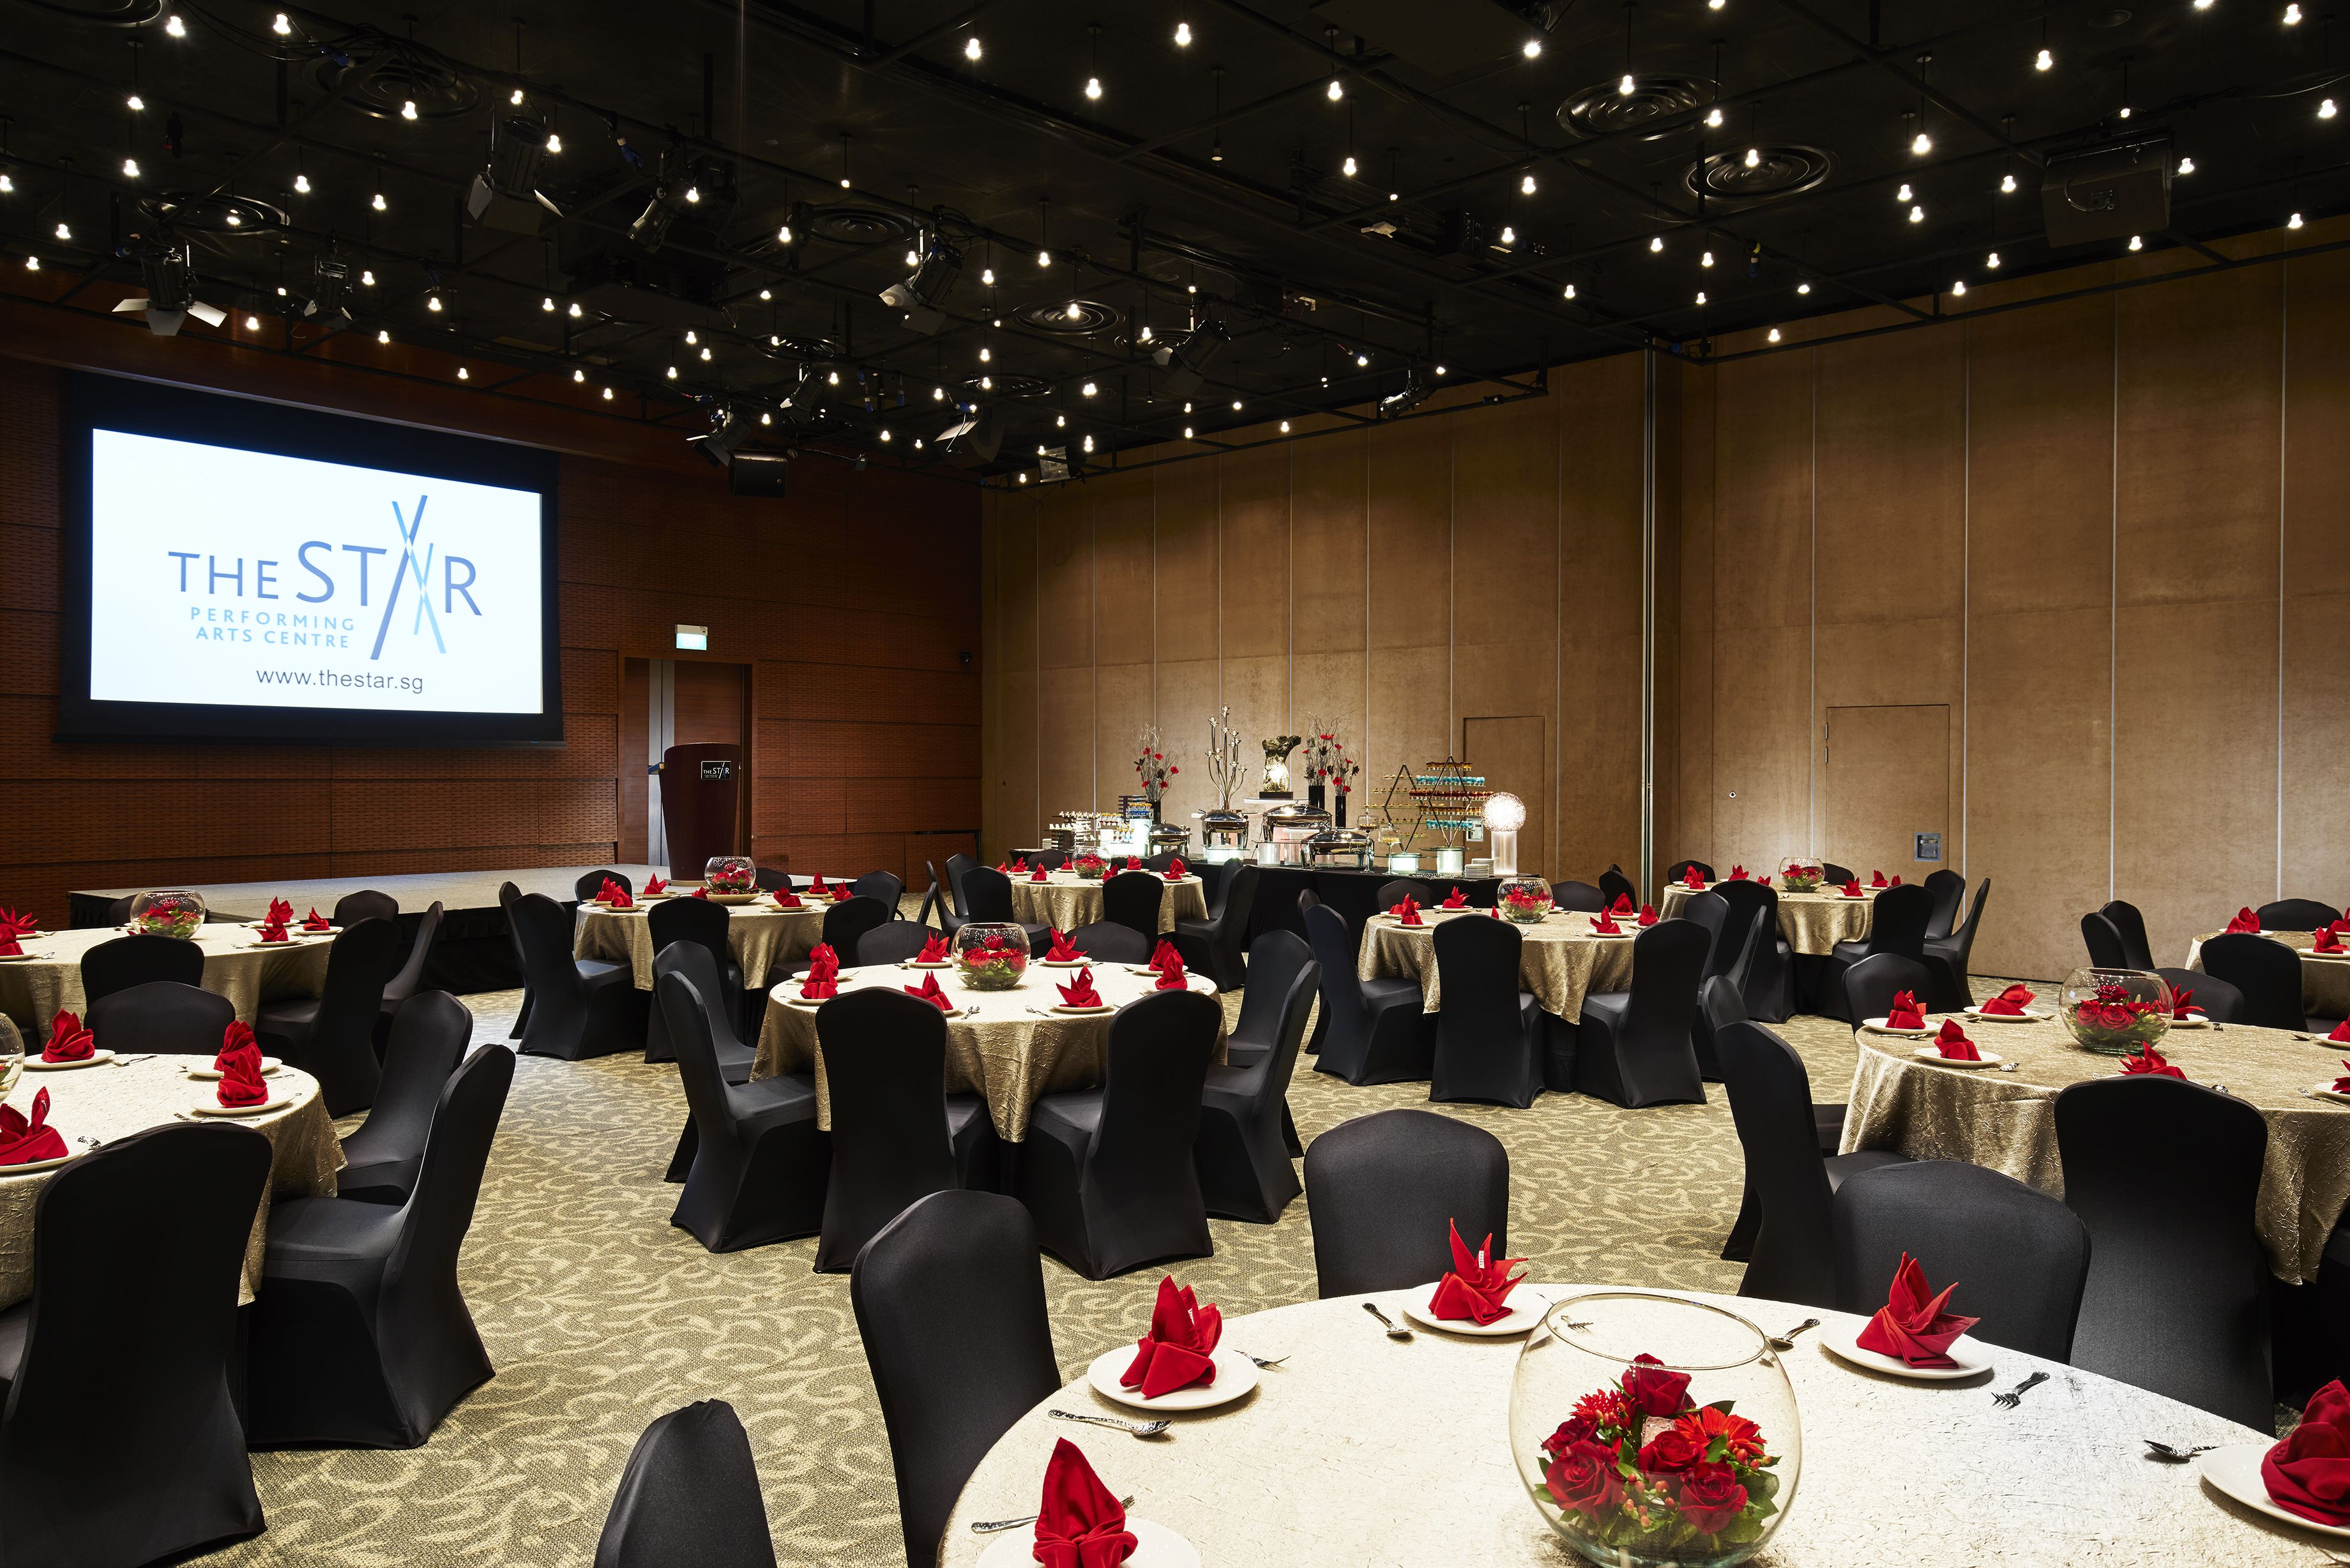 The Star Gallery Banquet Setting Function Hall Theatre Style Seating Room